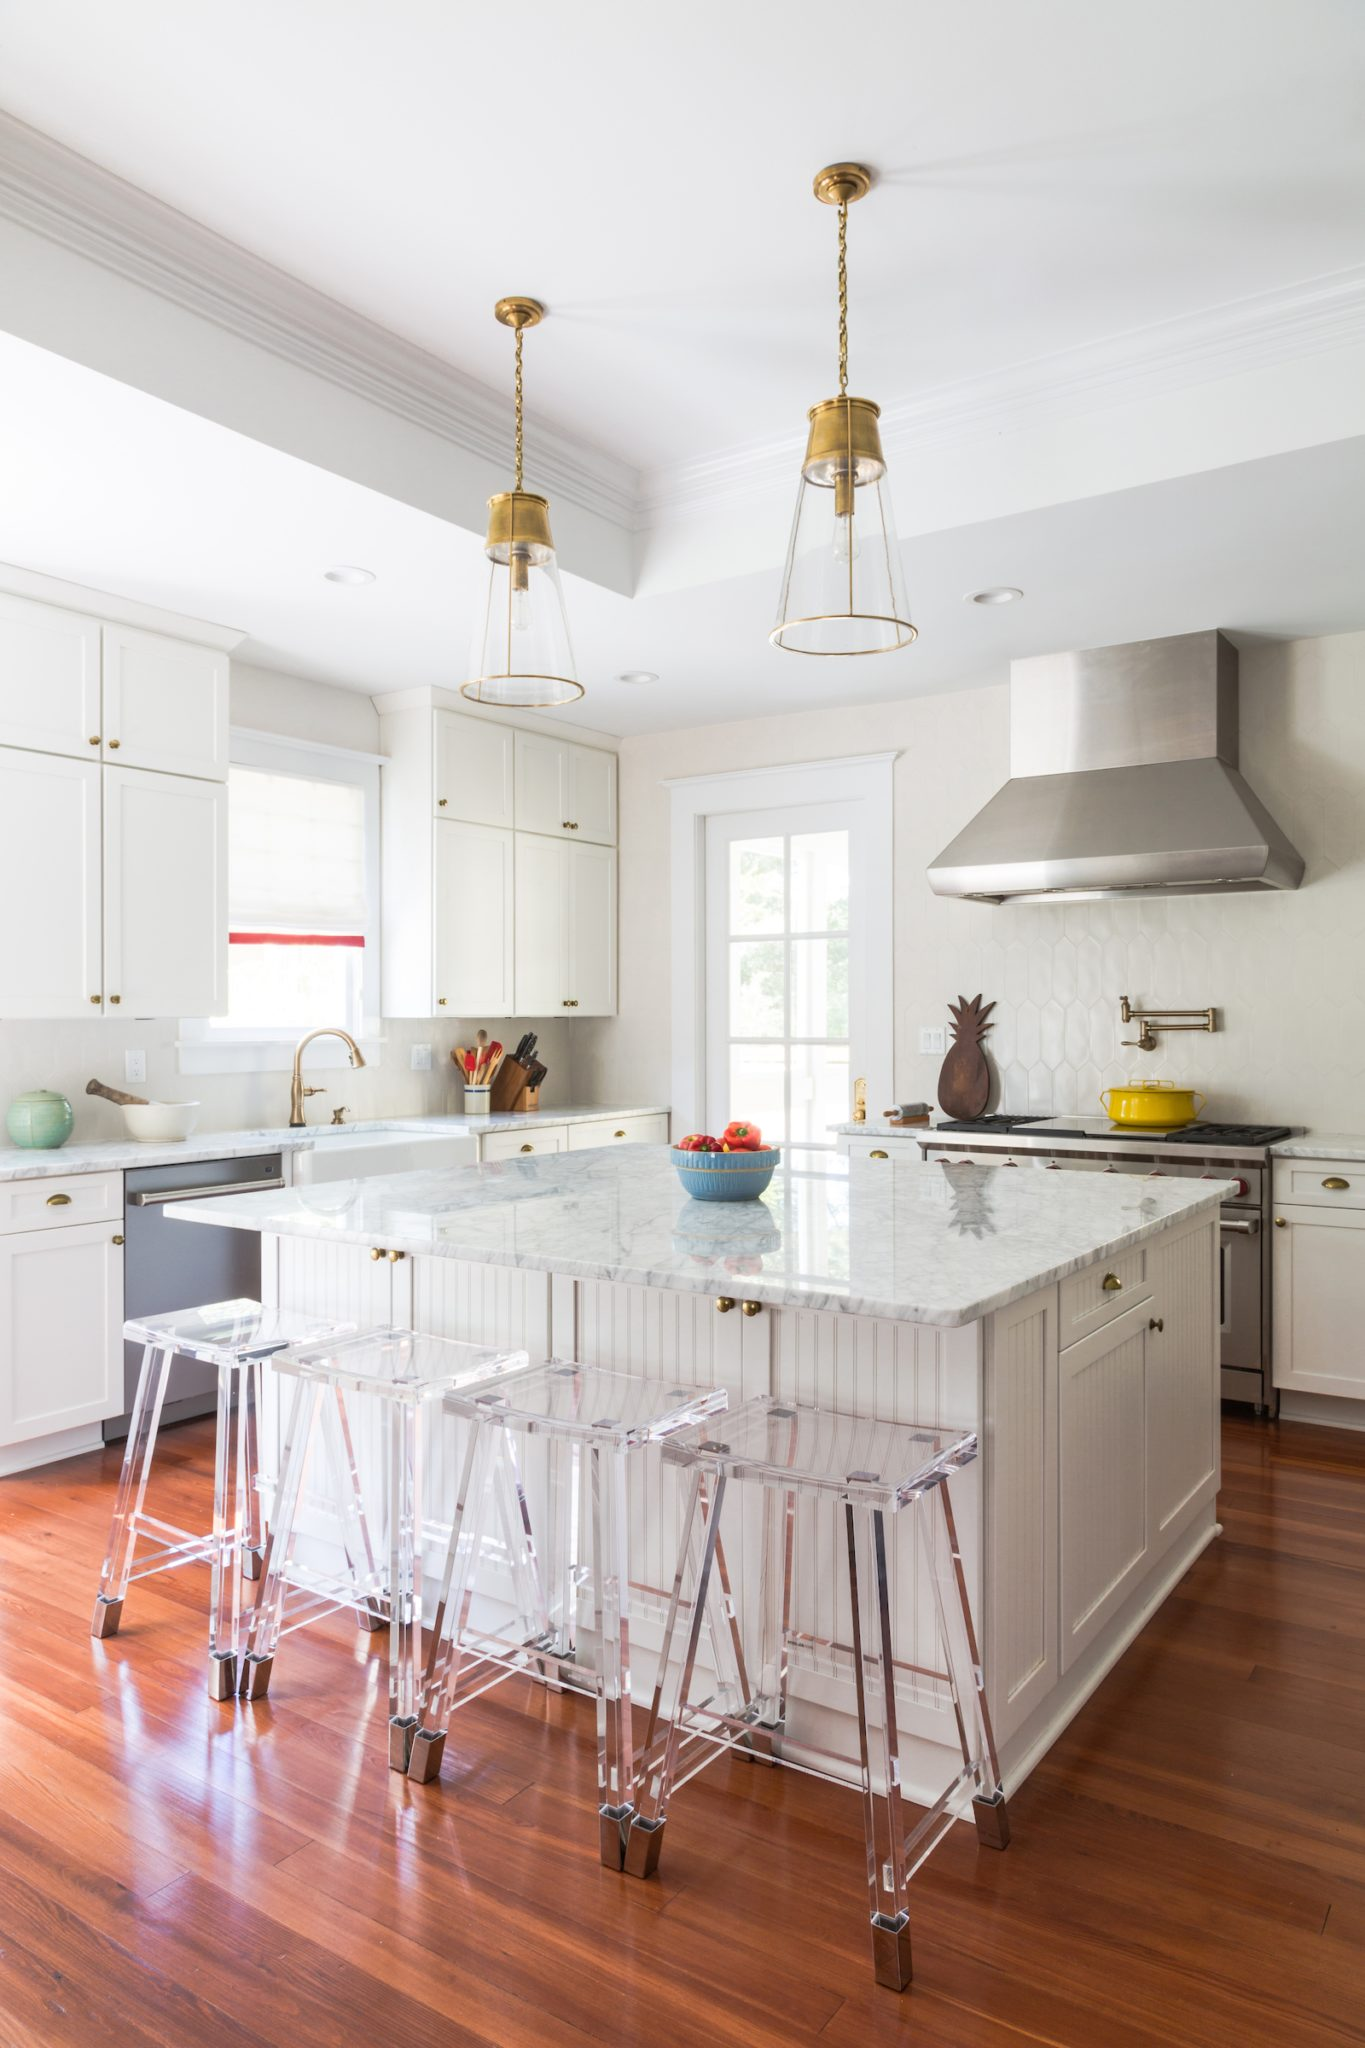 All white kitchen with custom cabinetry and geometric ceramic backsplash by Eclectic Home